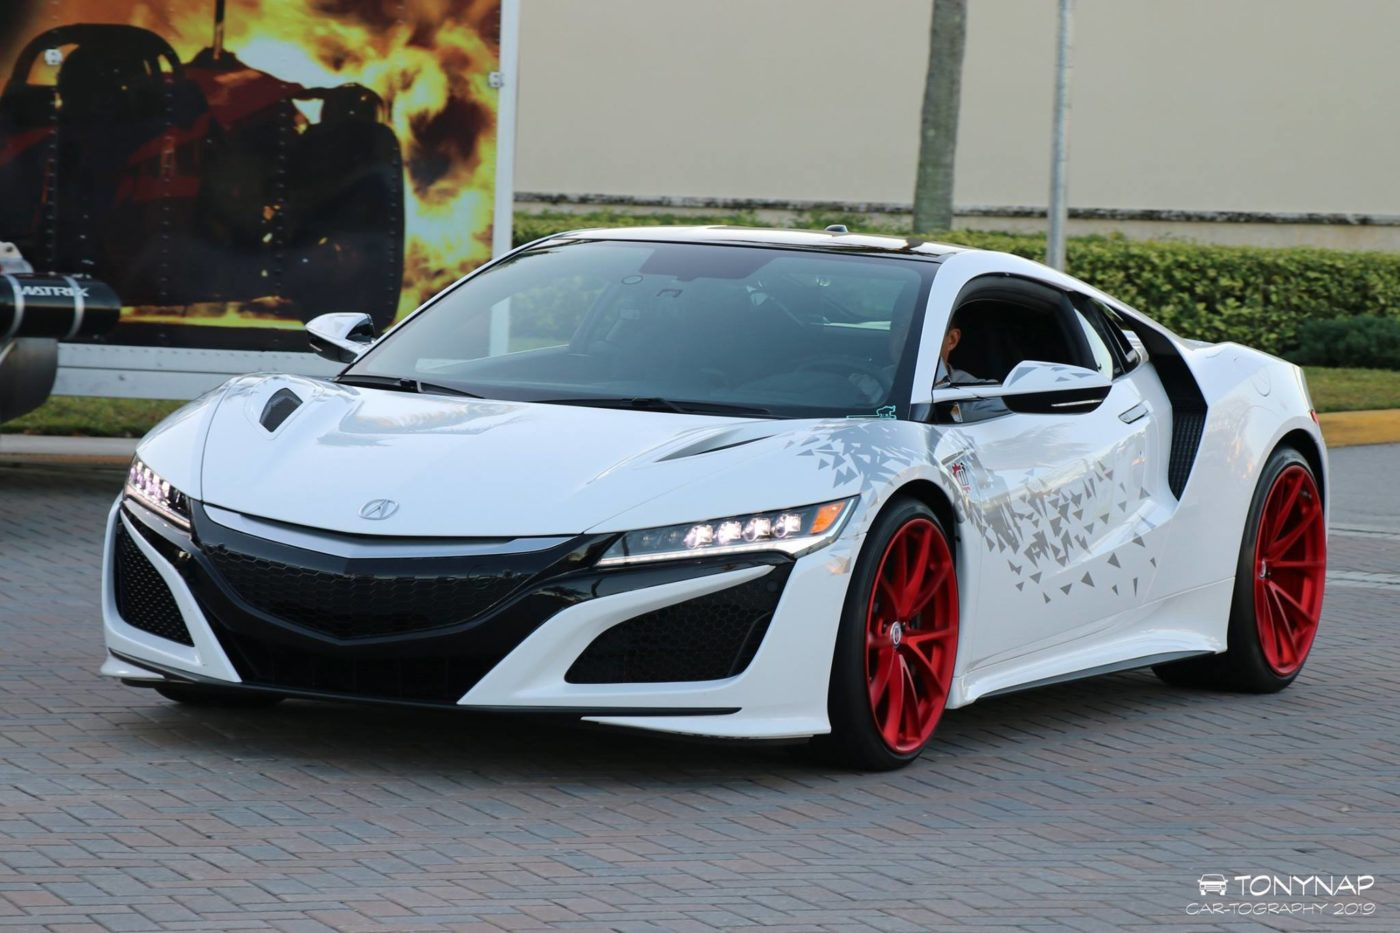 Every aerodynamic aspect of the Acura nsx is functional and visually appealing